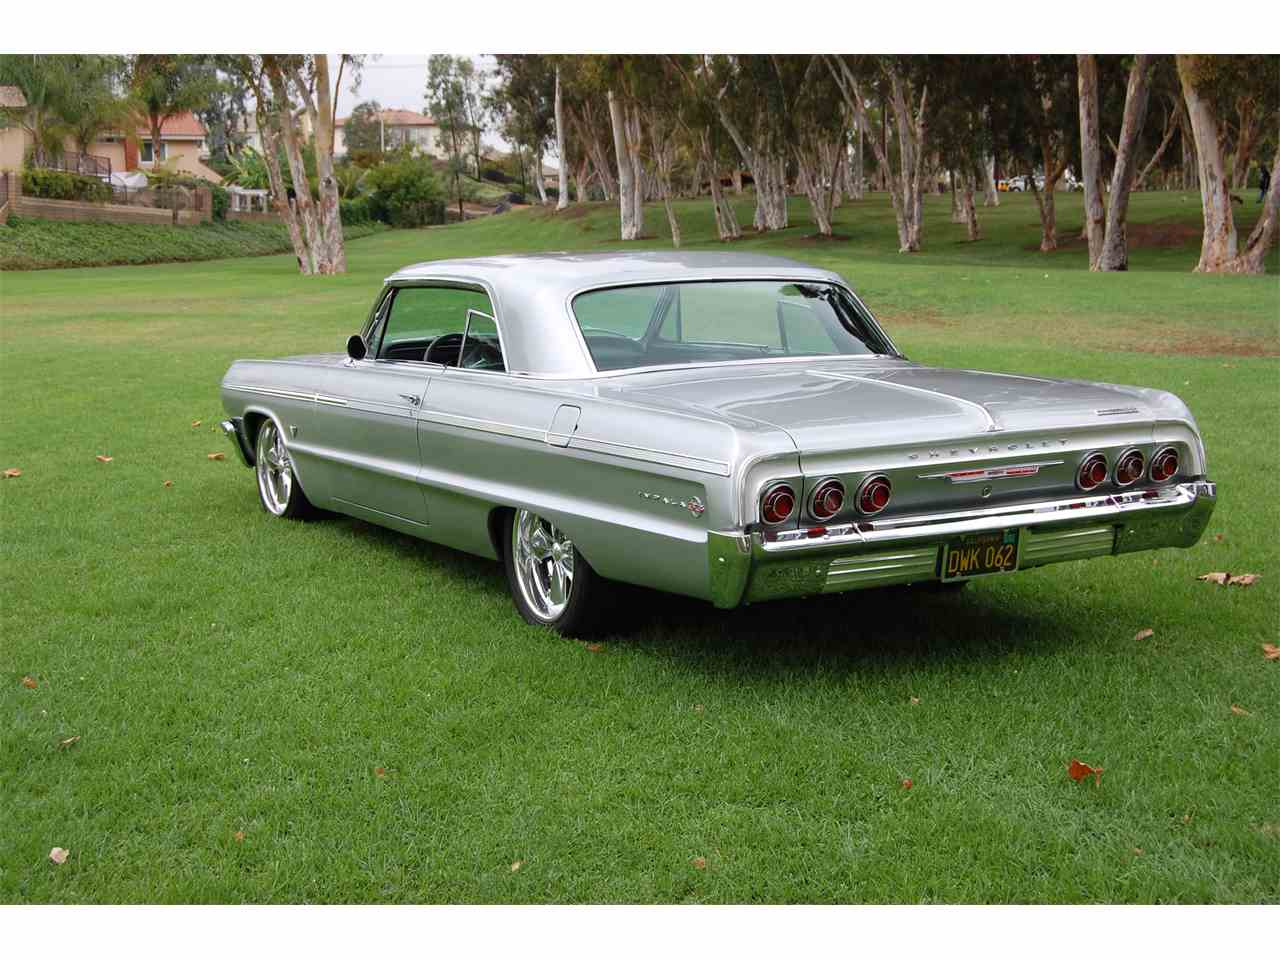 1964 Chevrolet Impala SS for Sale on ClassicCars.com